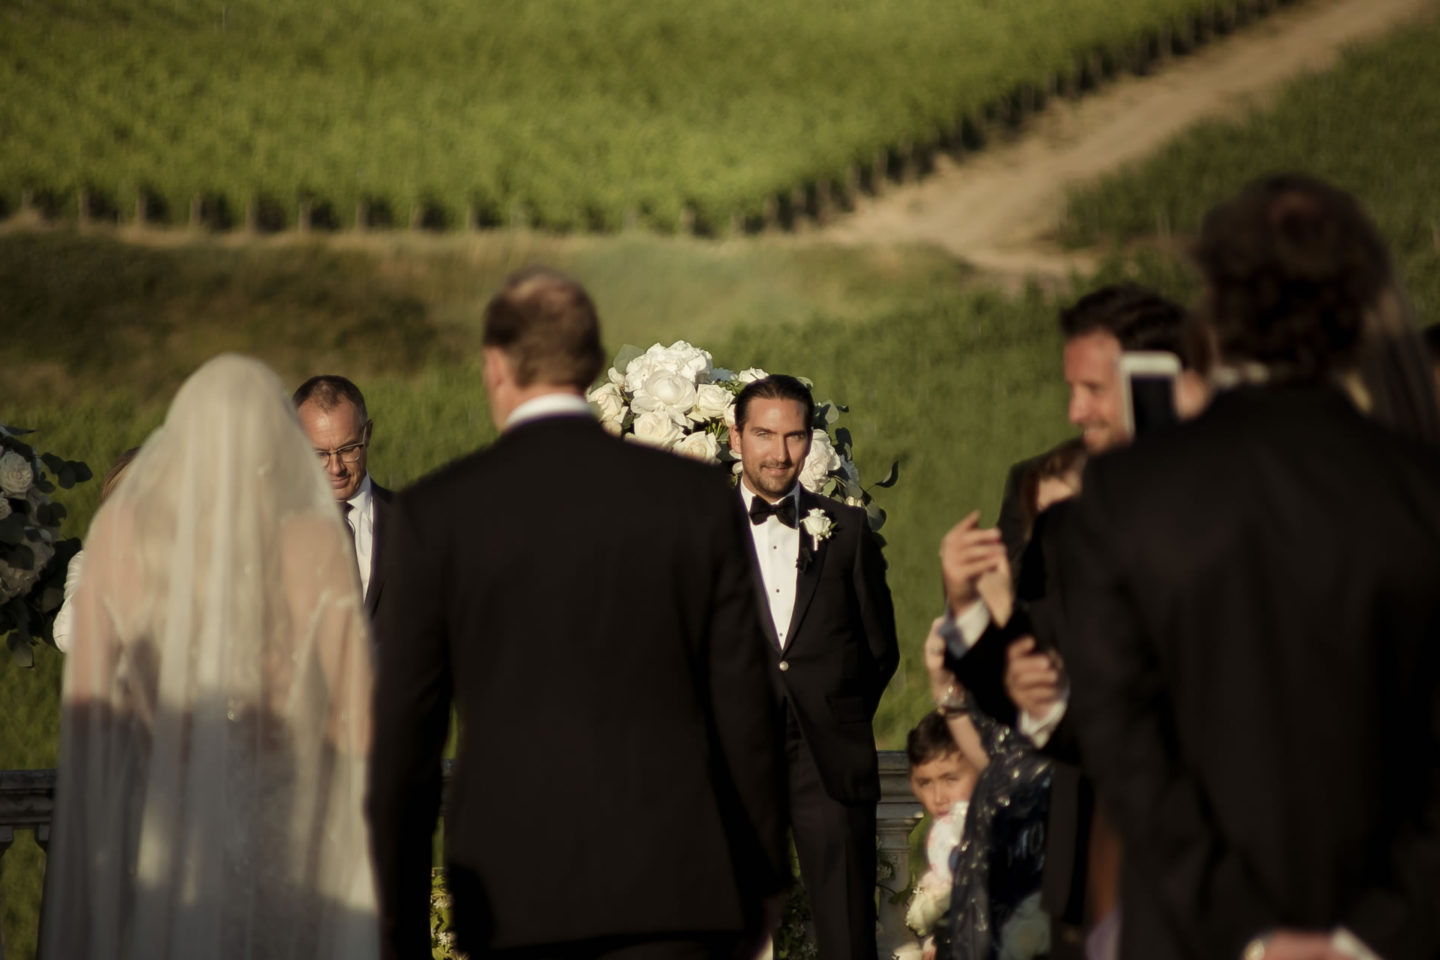 Look :: Exciting wedding in the countryside of Siena :: Luxury wedding photography - 40 :: Look